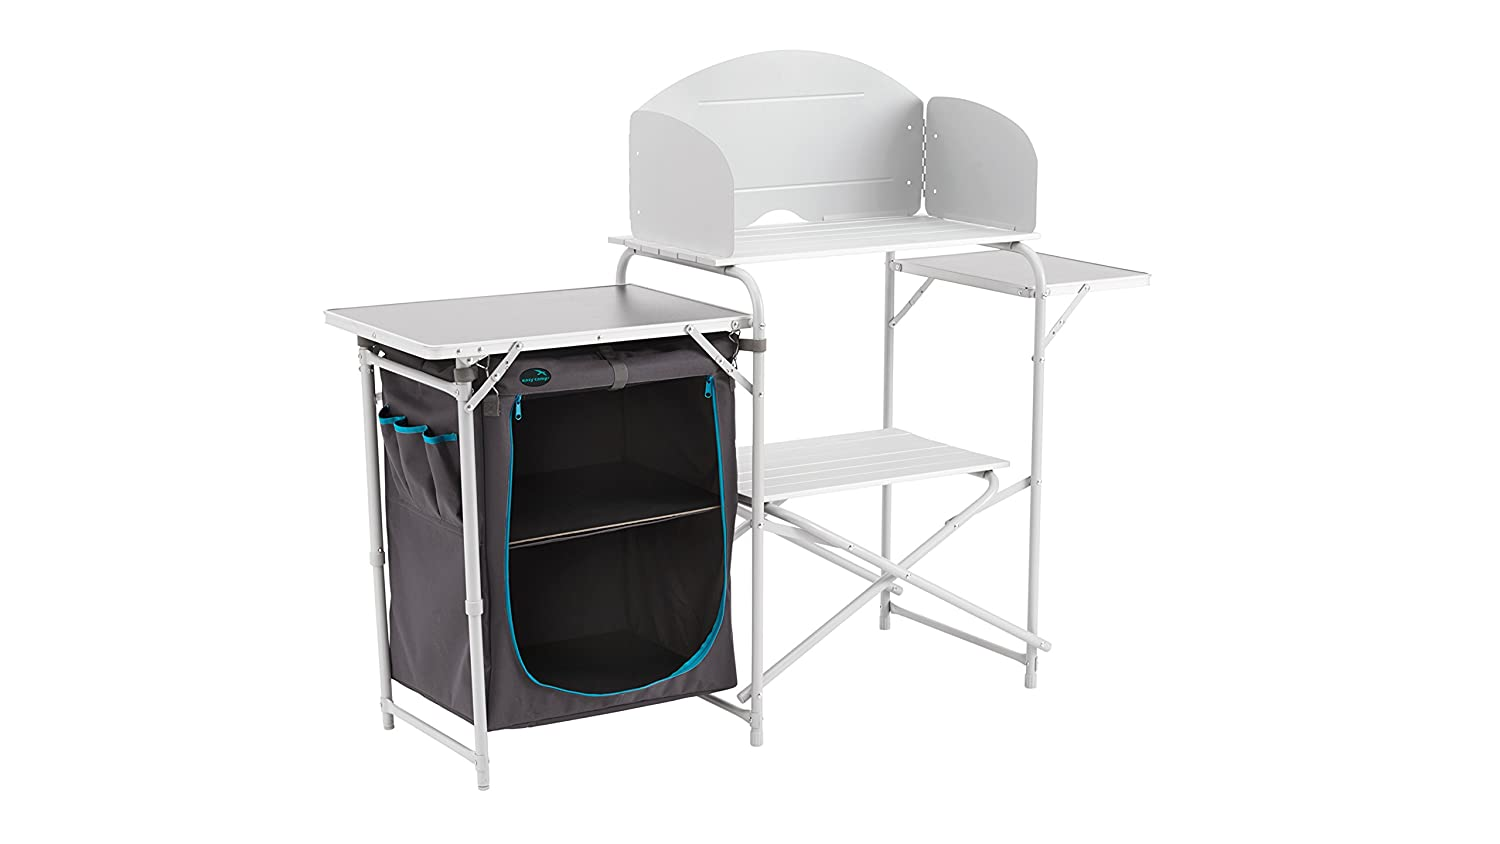 Easy Camp 480037 Sarin Kitchen Table - Grey/Silver, One Size